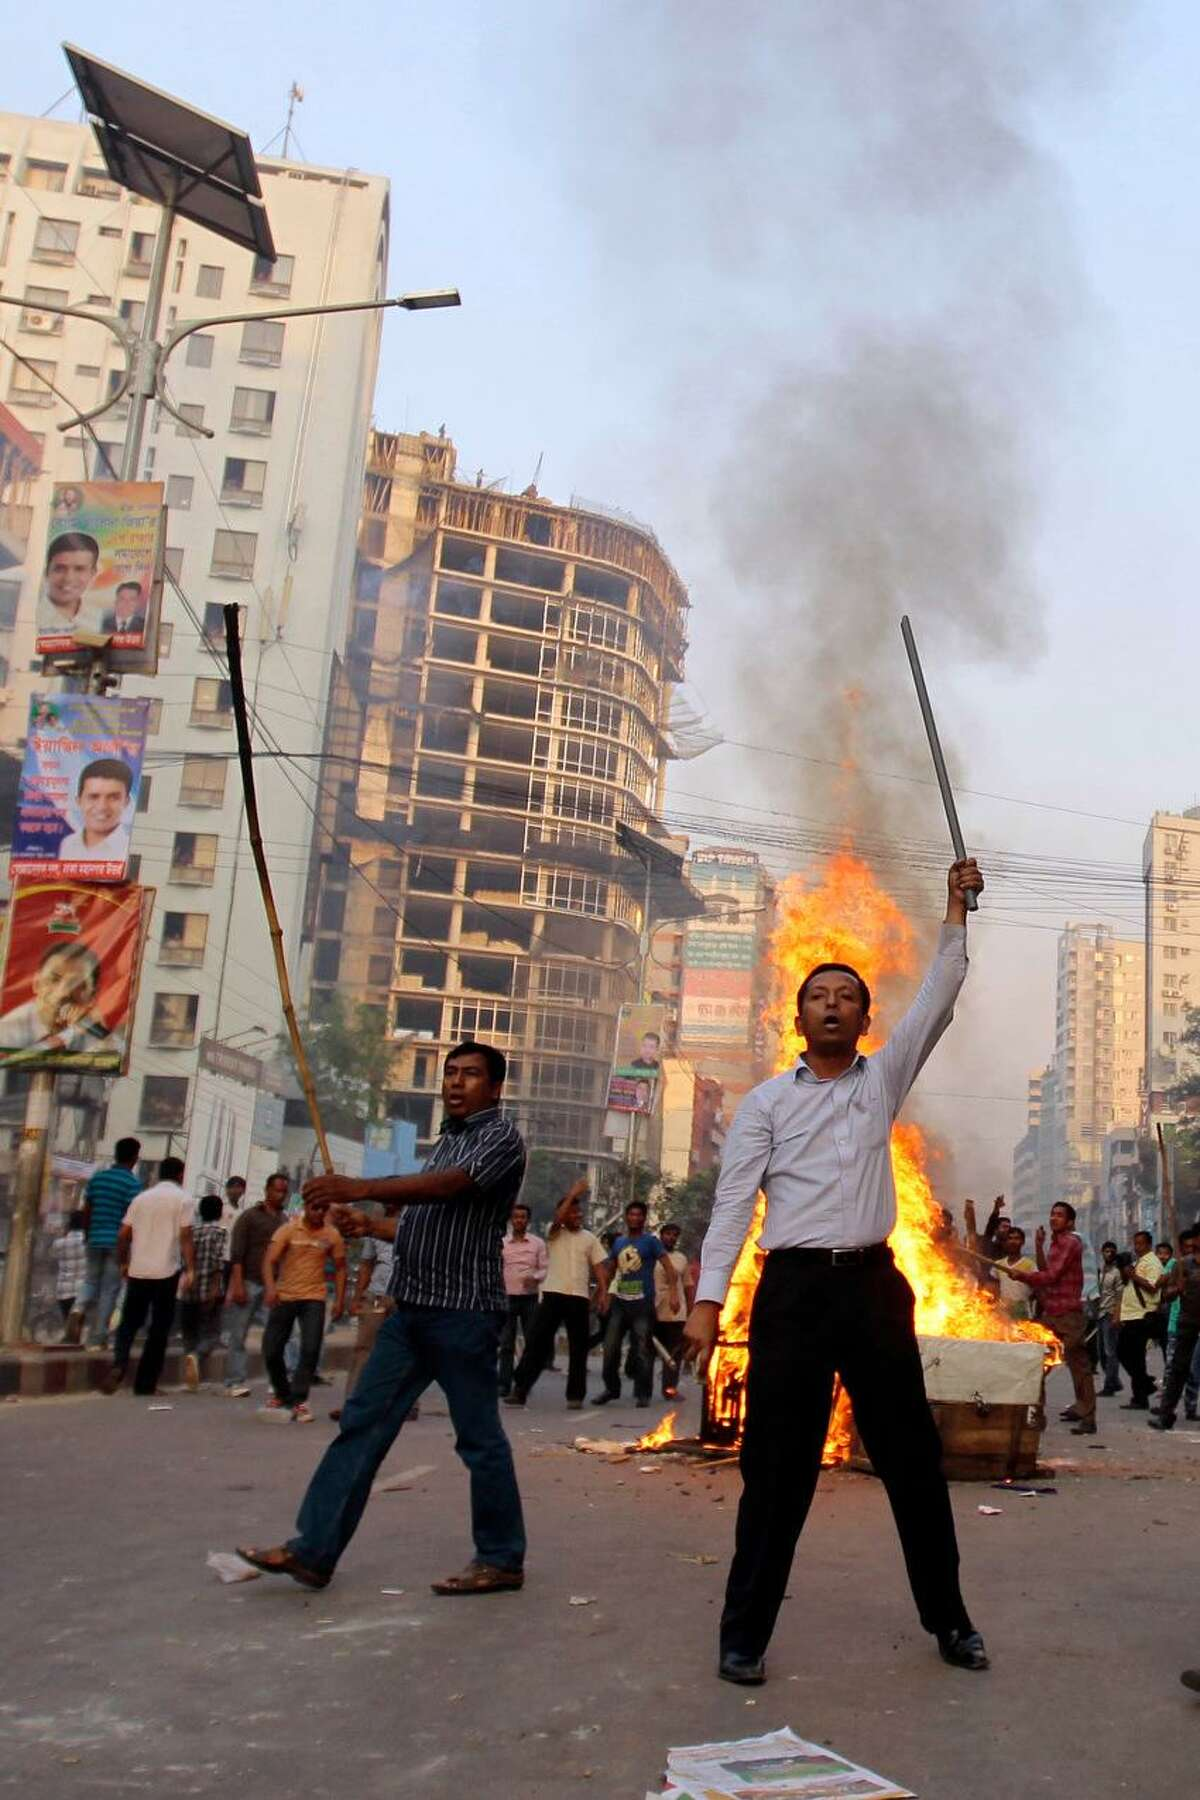 Bangladeshís opposition activists shout slogans after they burn a street vendor's cart as they clash with police during their protest in Dhaka, Bangladesh, Monday, March 11, 2013. The protest was called by an alliance of 18 parties to denounce trials of several opposition politicians accused of mass killings and atrocities during Bangladesh's 1971 independence war against Pakistan. (AP Photo/A.M. Ahad)